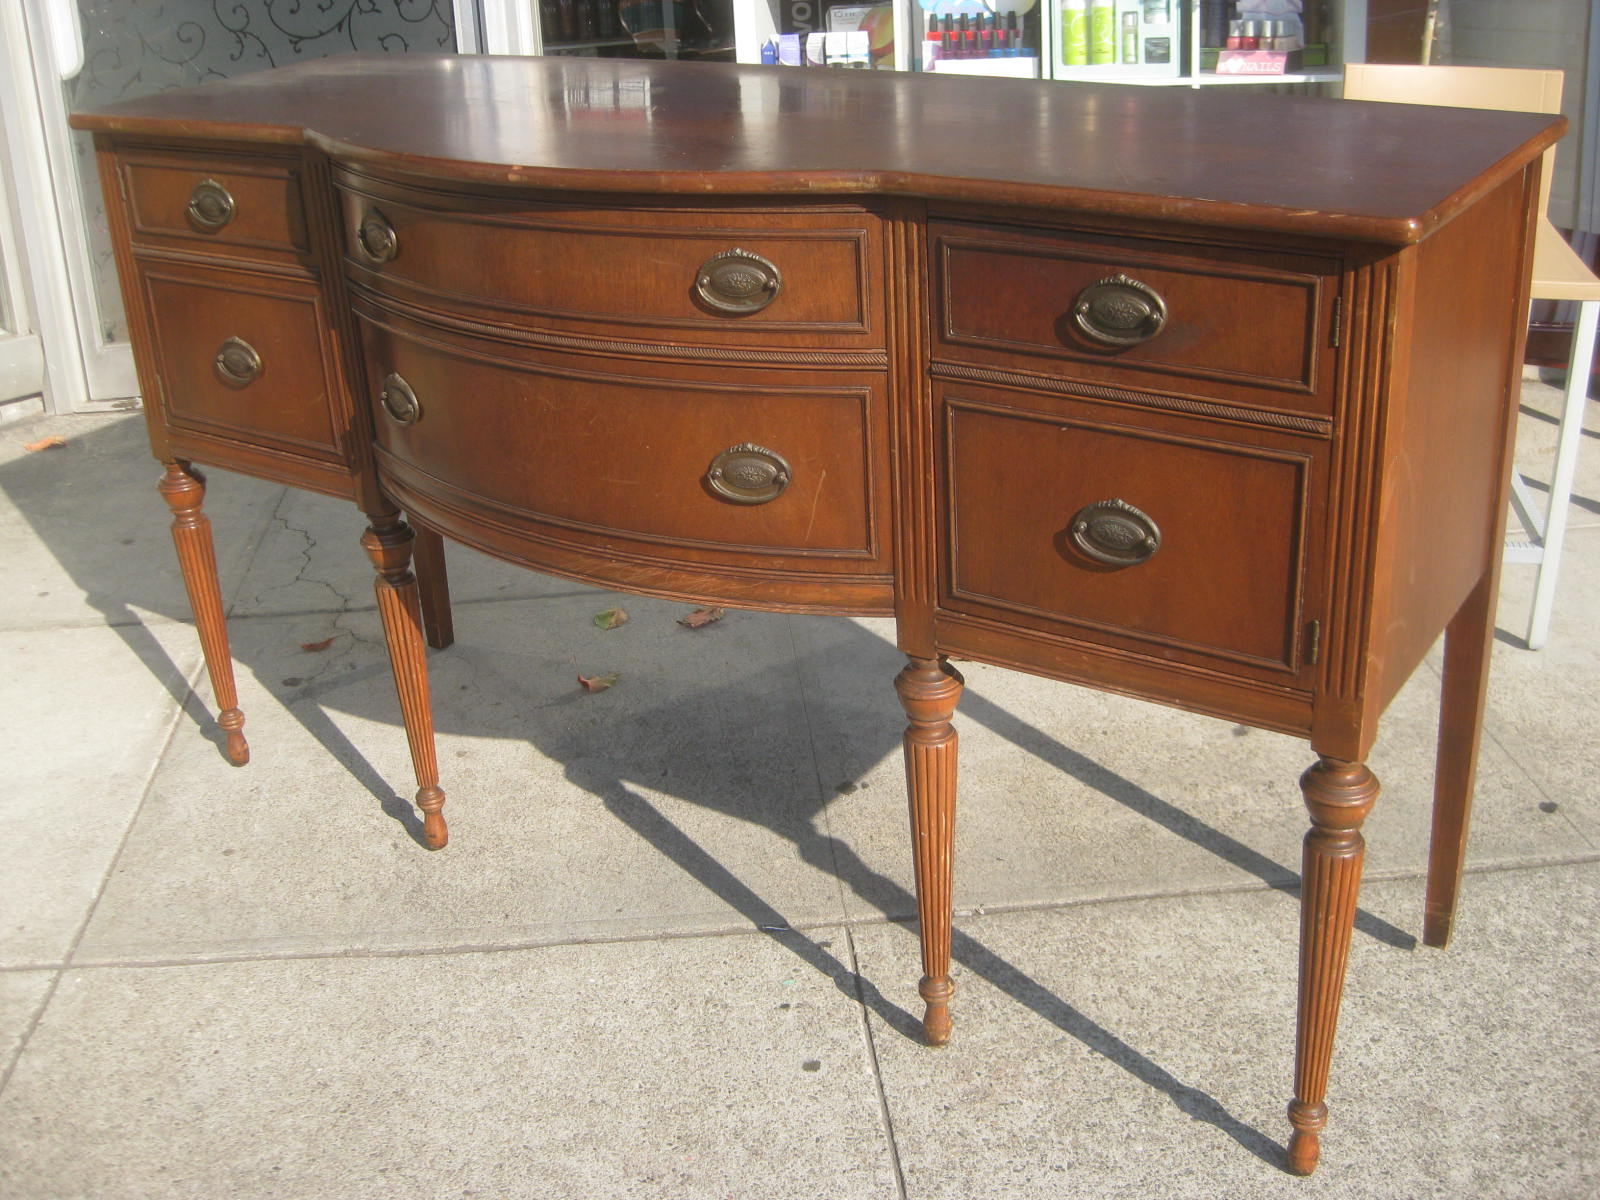 Sold Duncan Phyfe Sideboard 200